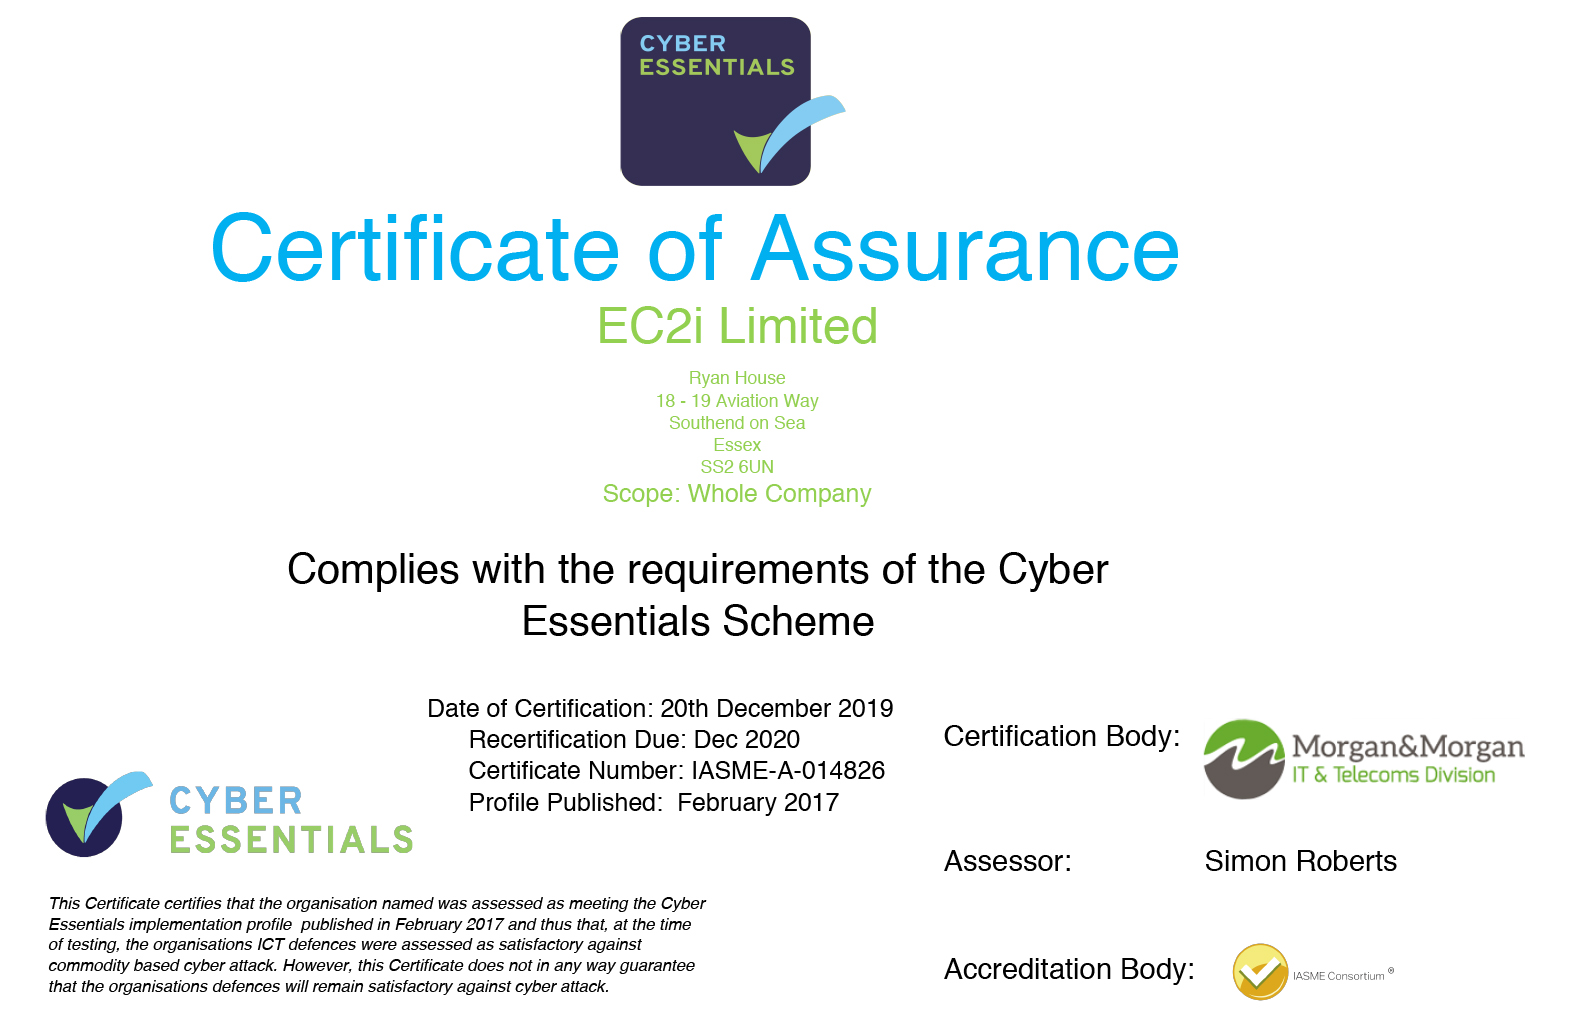 Cyber_Essentails_Certificate